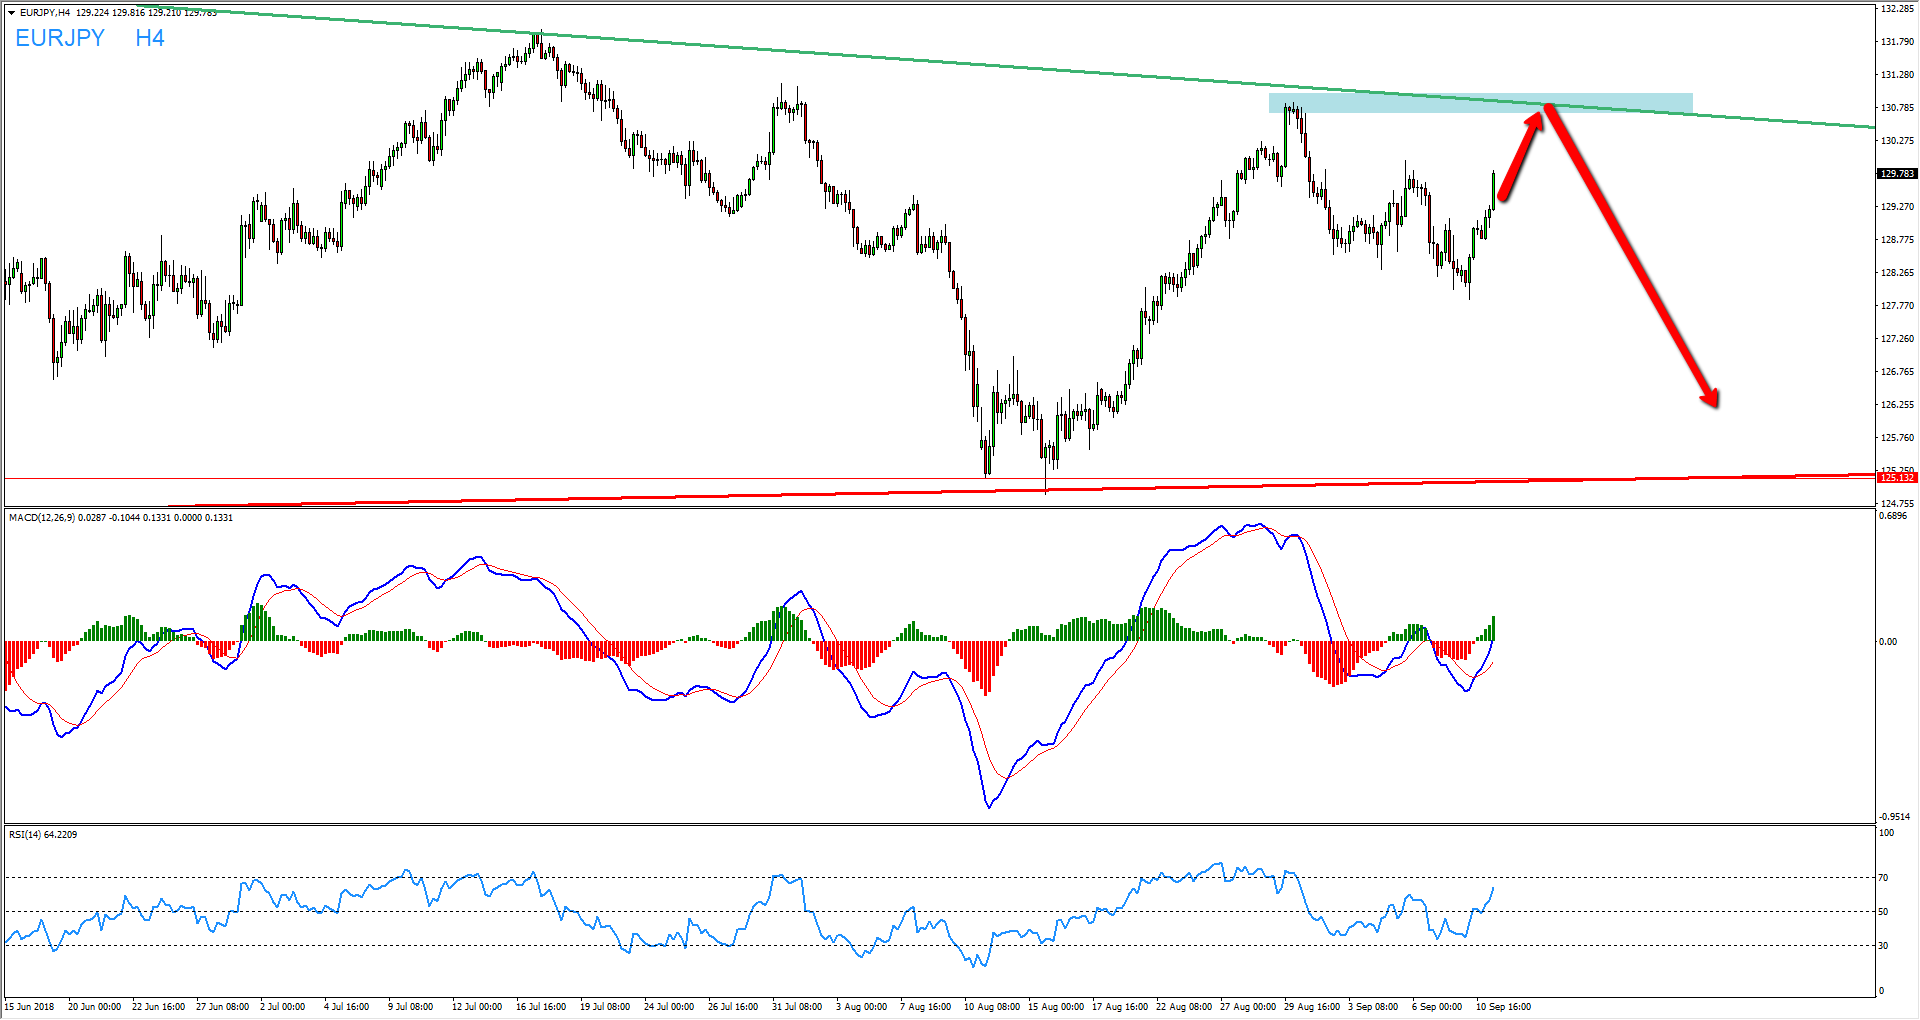 EURJPY Daily Pattern Provides Sell Opportunity